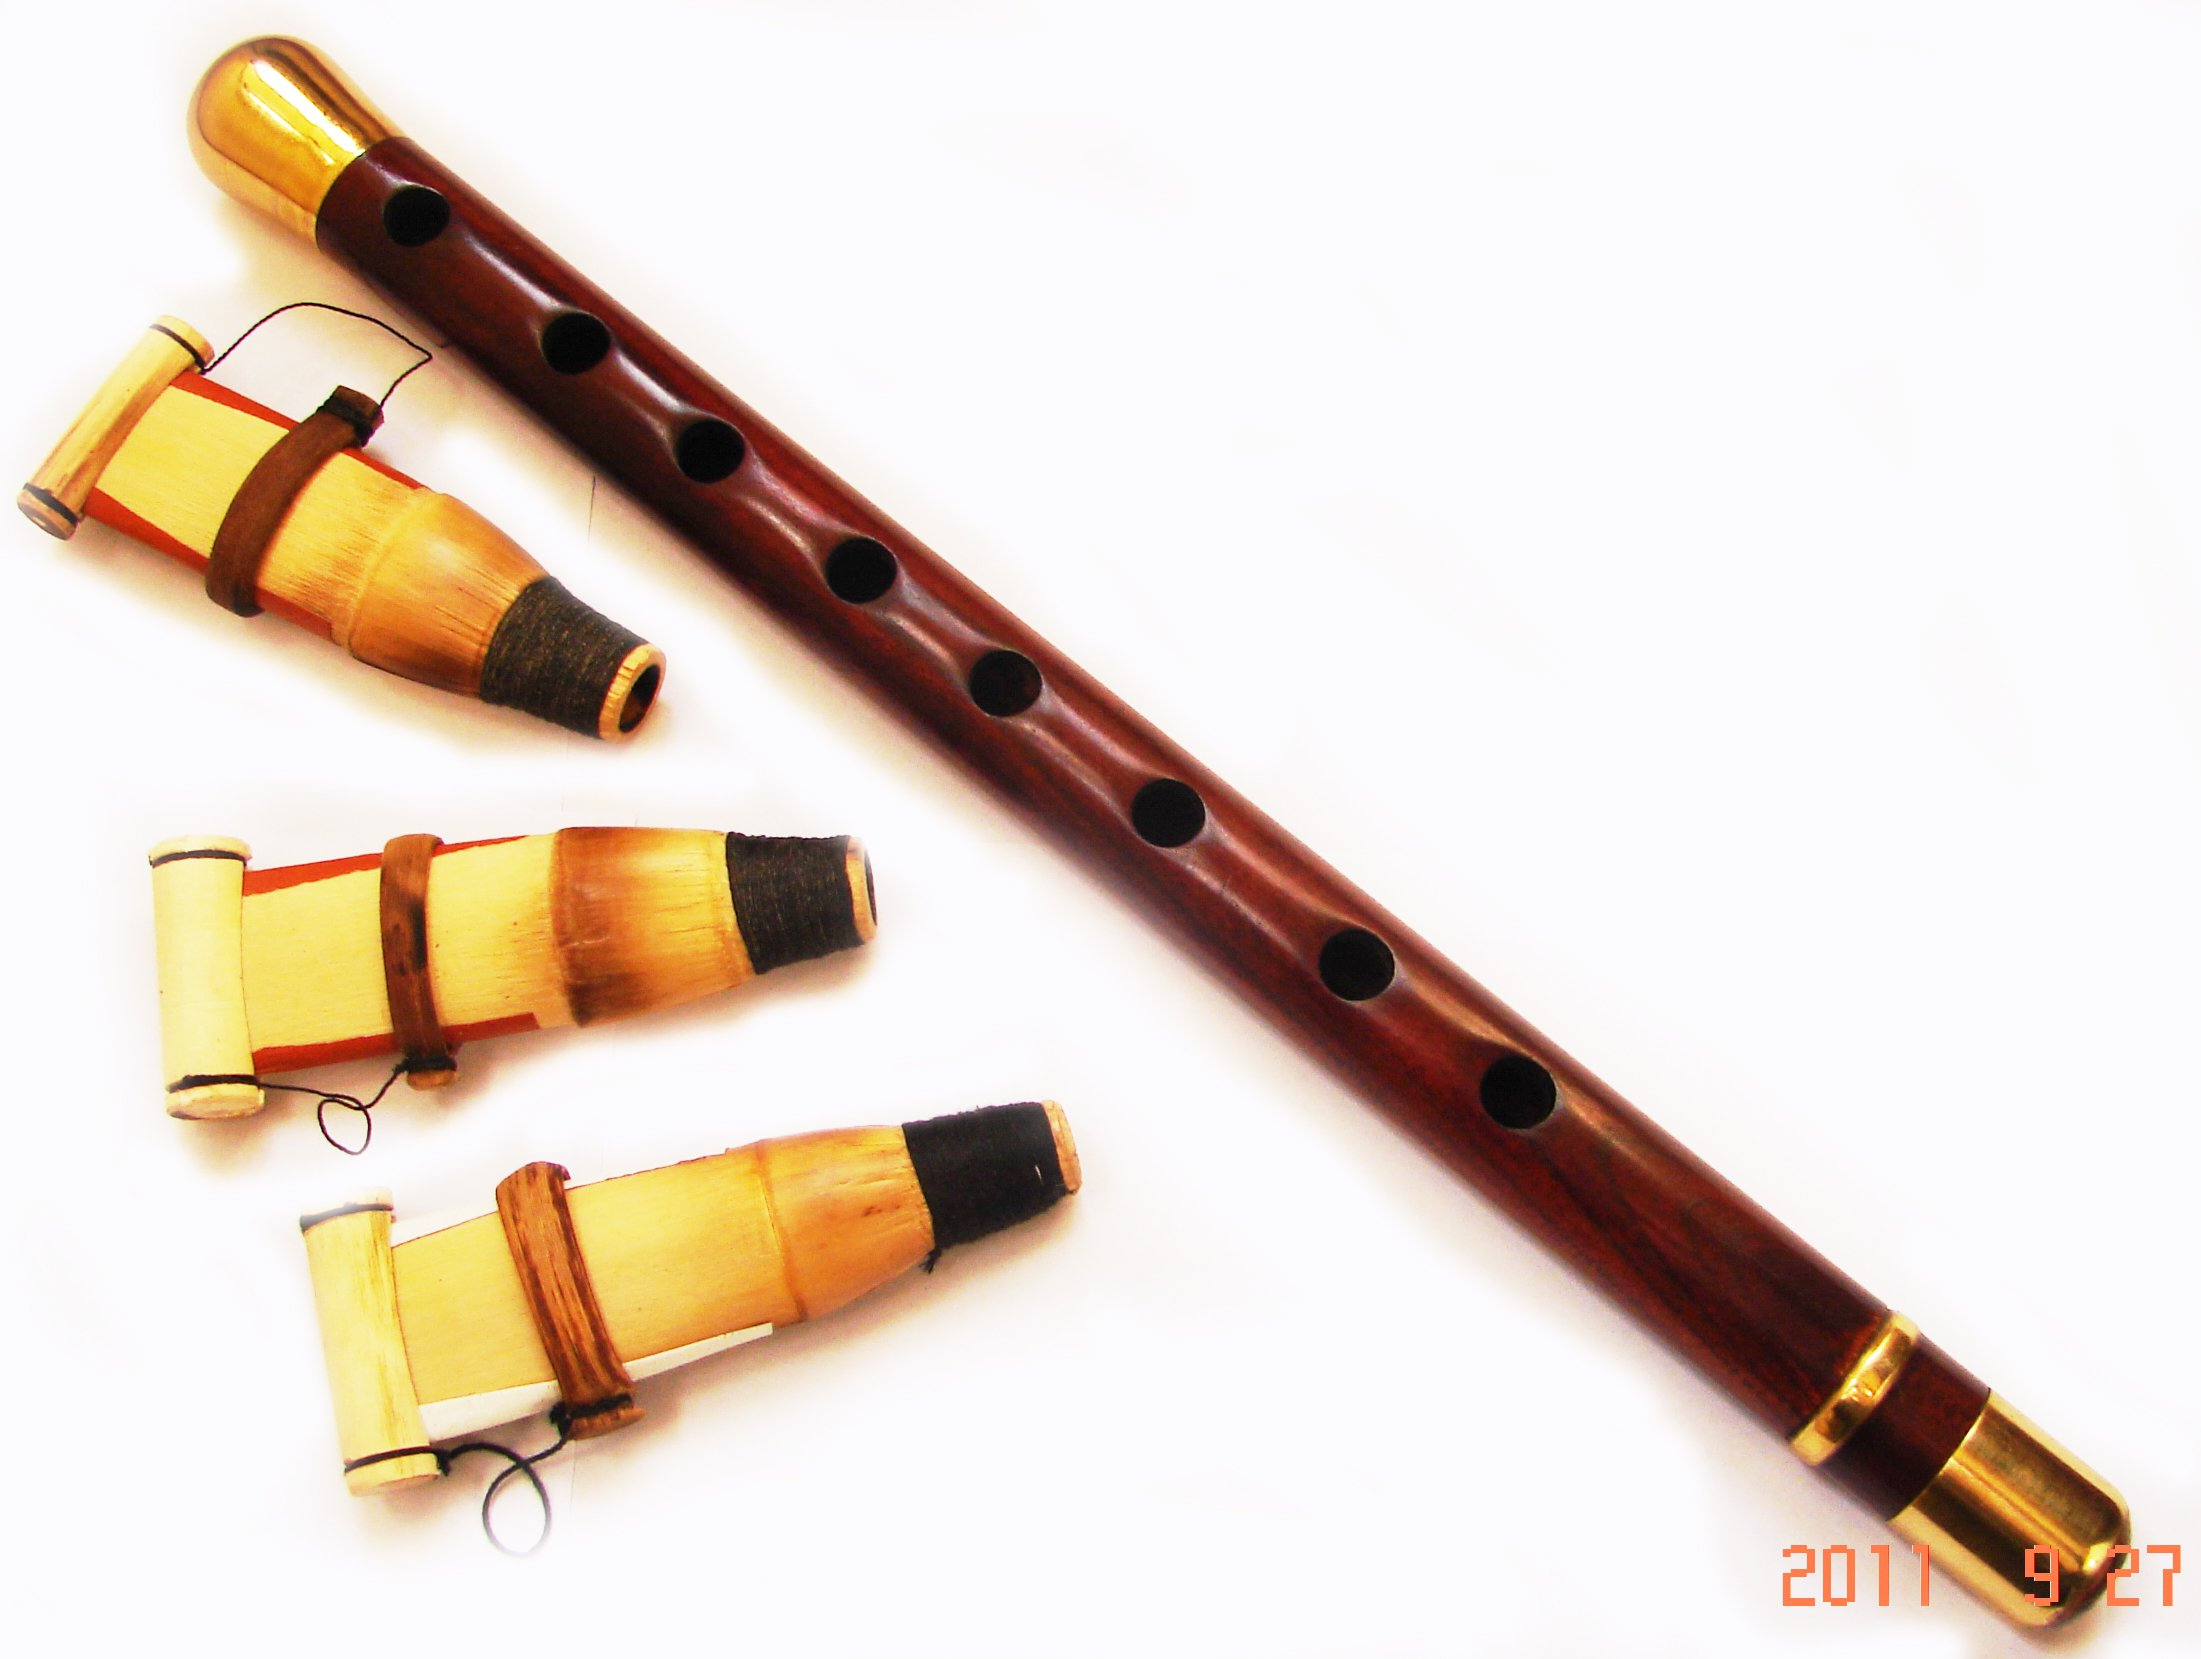 Golden Duduk Armenian Professional Instrument with 3 Reeds and Playing Instructions Included, Made in Armenia from Apricot Wood and Brass rings